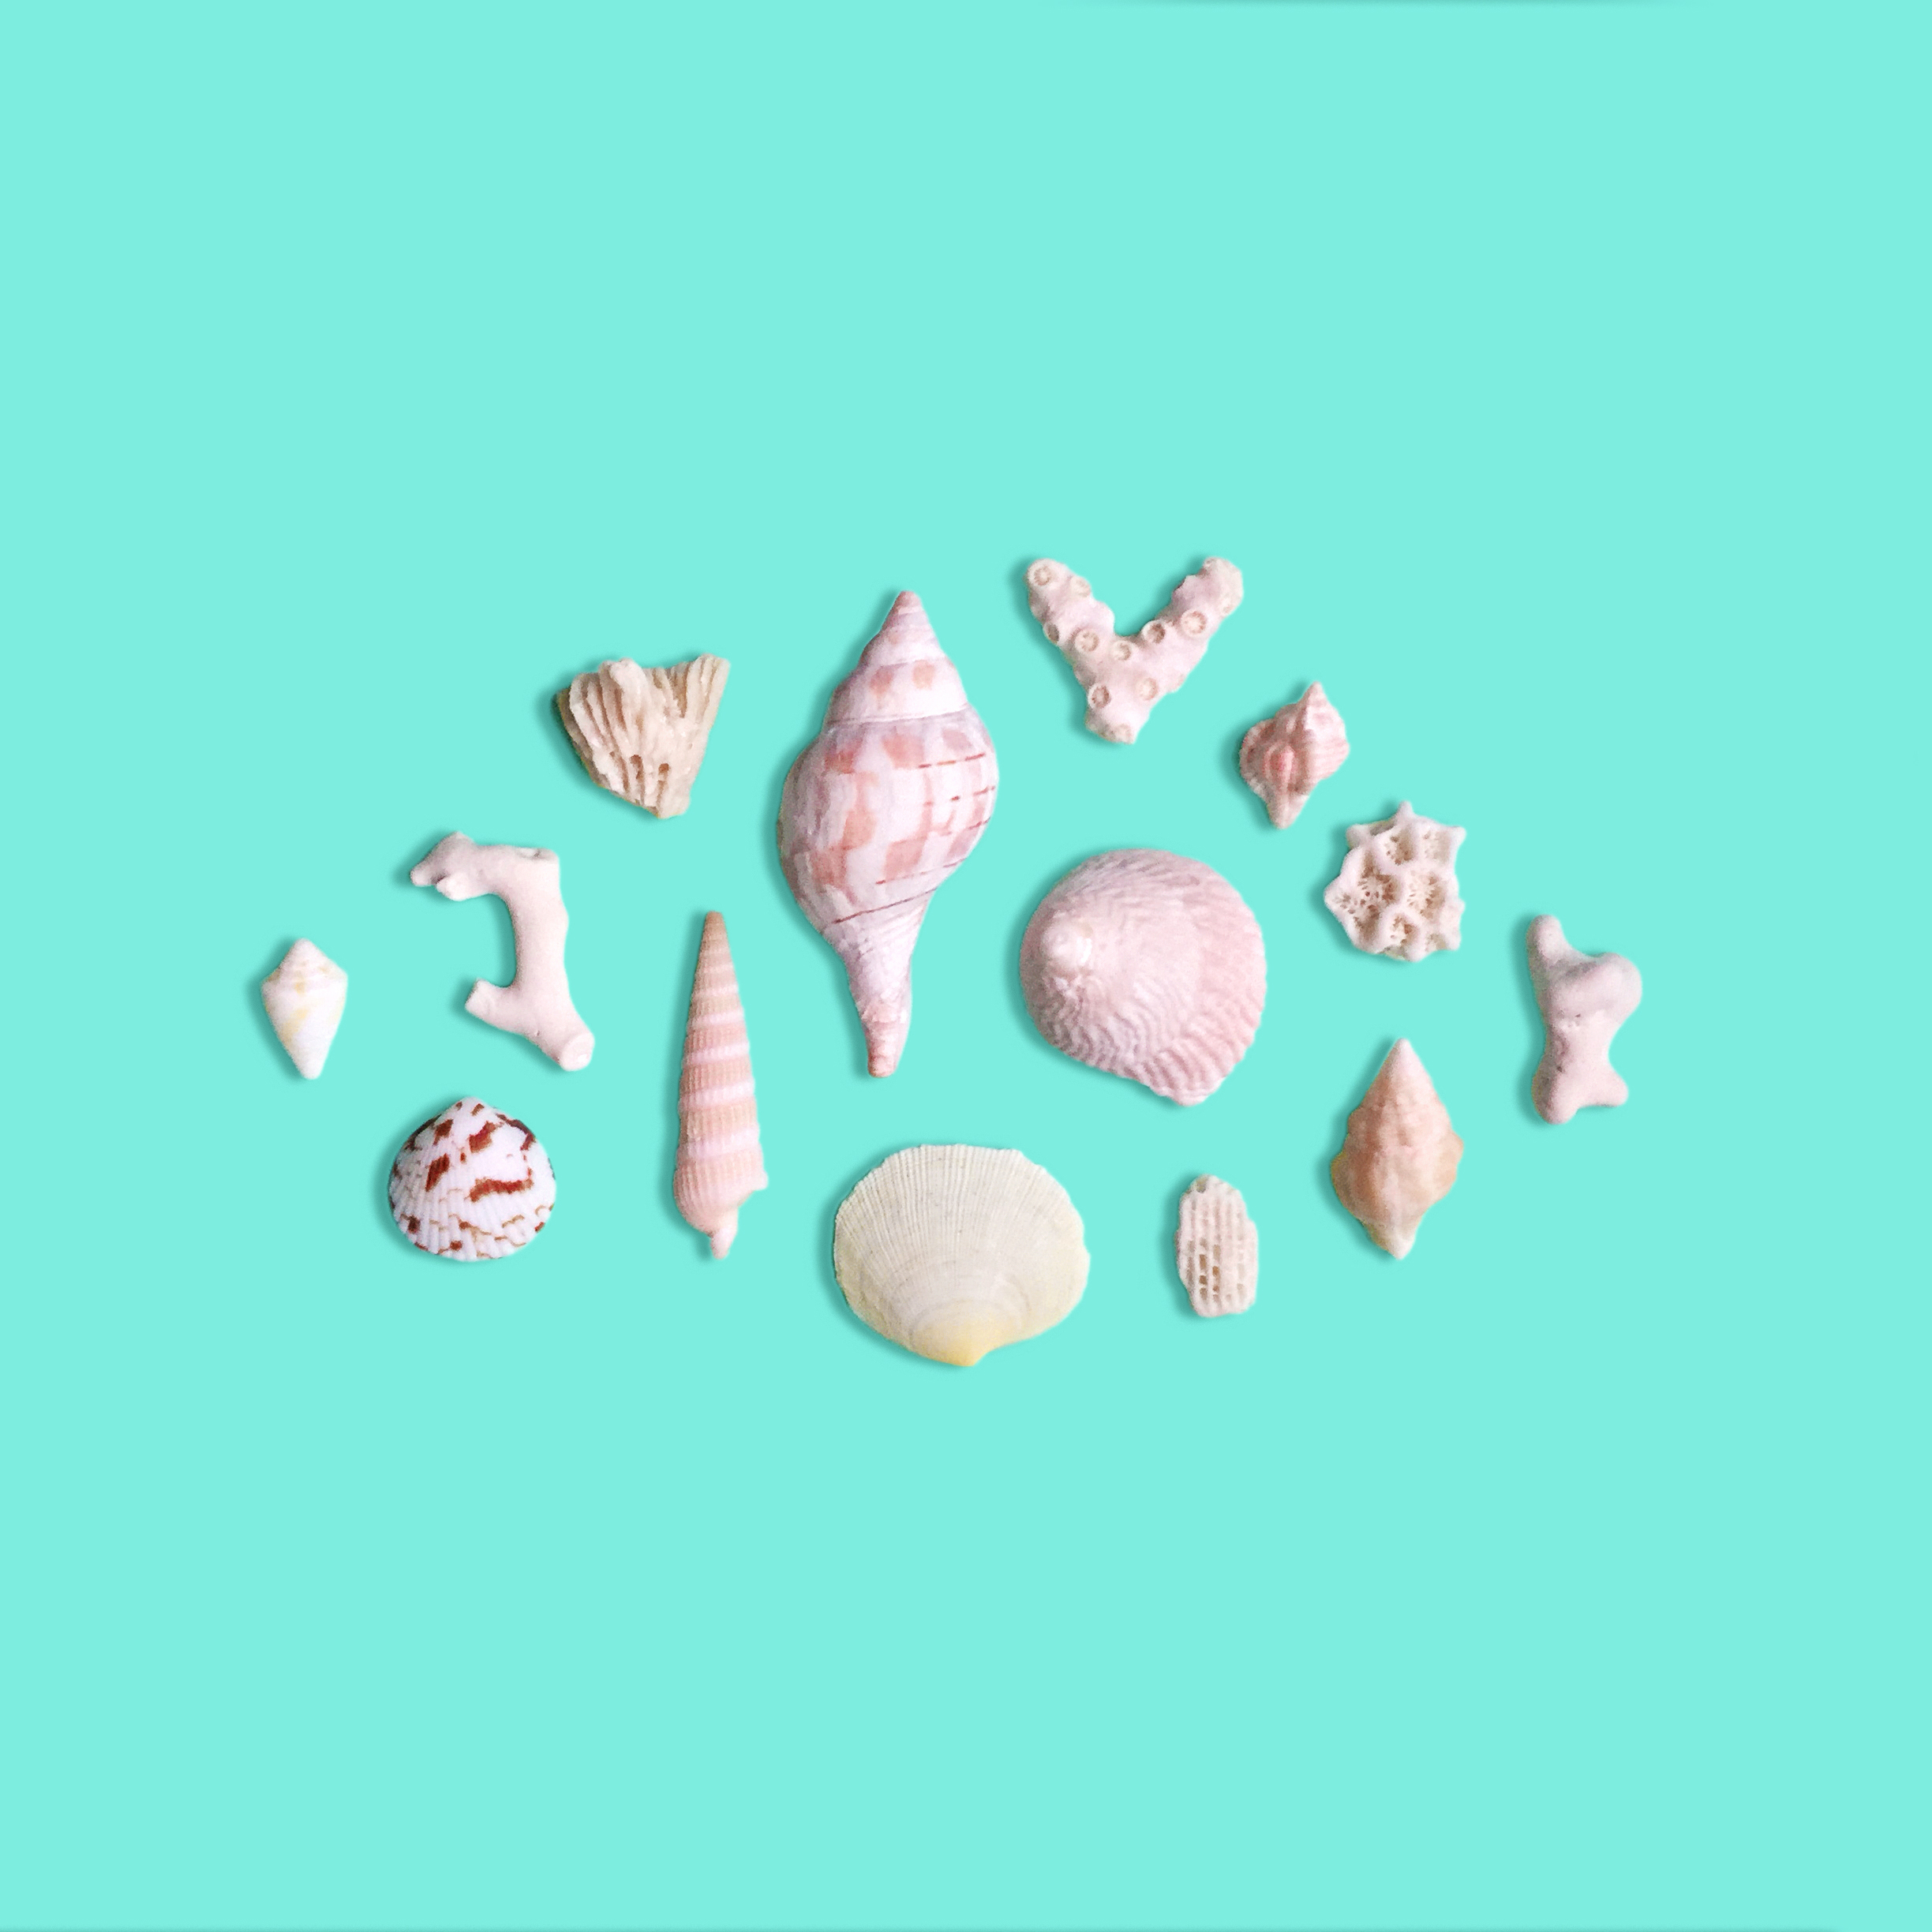 amy_chen_design_key_west_florida_seashell_collection.jpeg